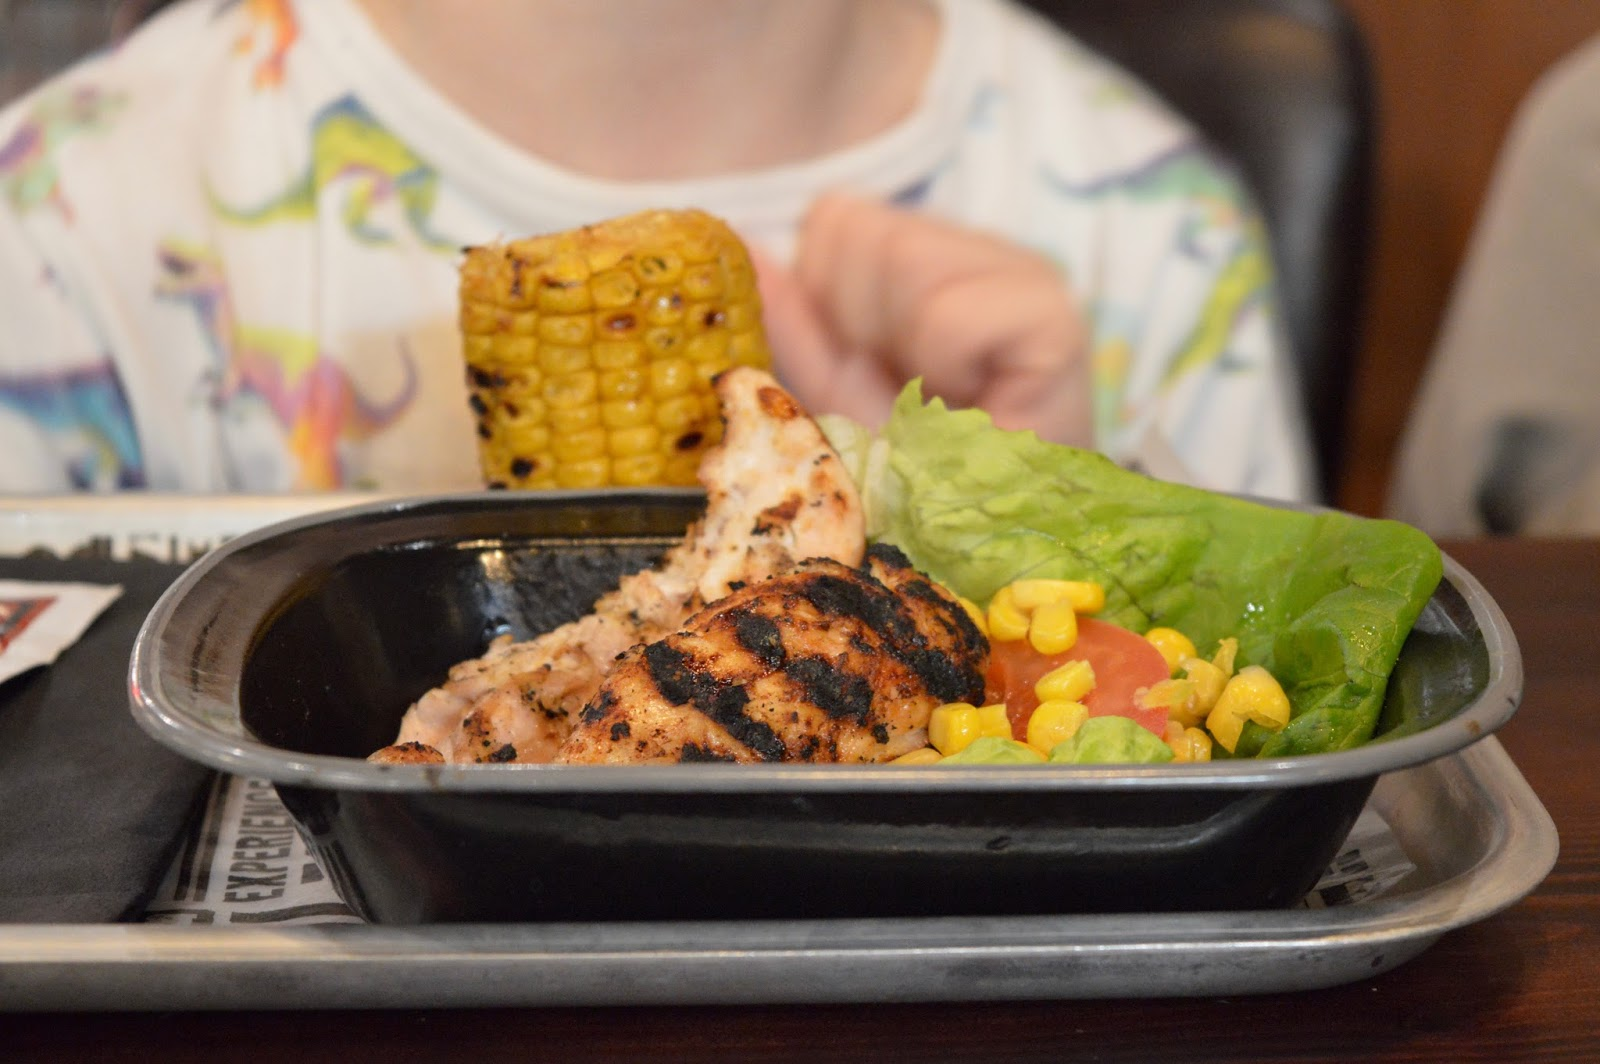 Red's True BBQ Newcastle | Menu Review (including Children's Menu) - kids main chicken and corn on cob